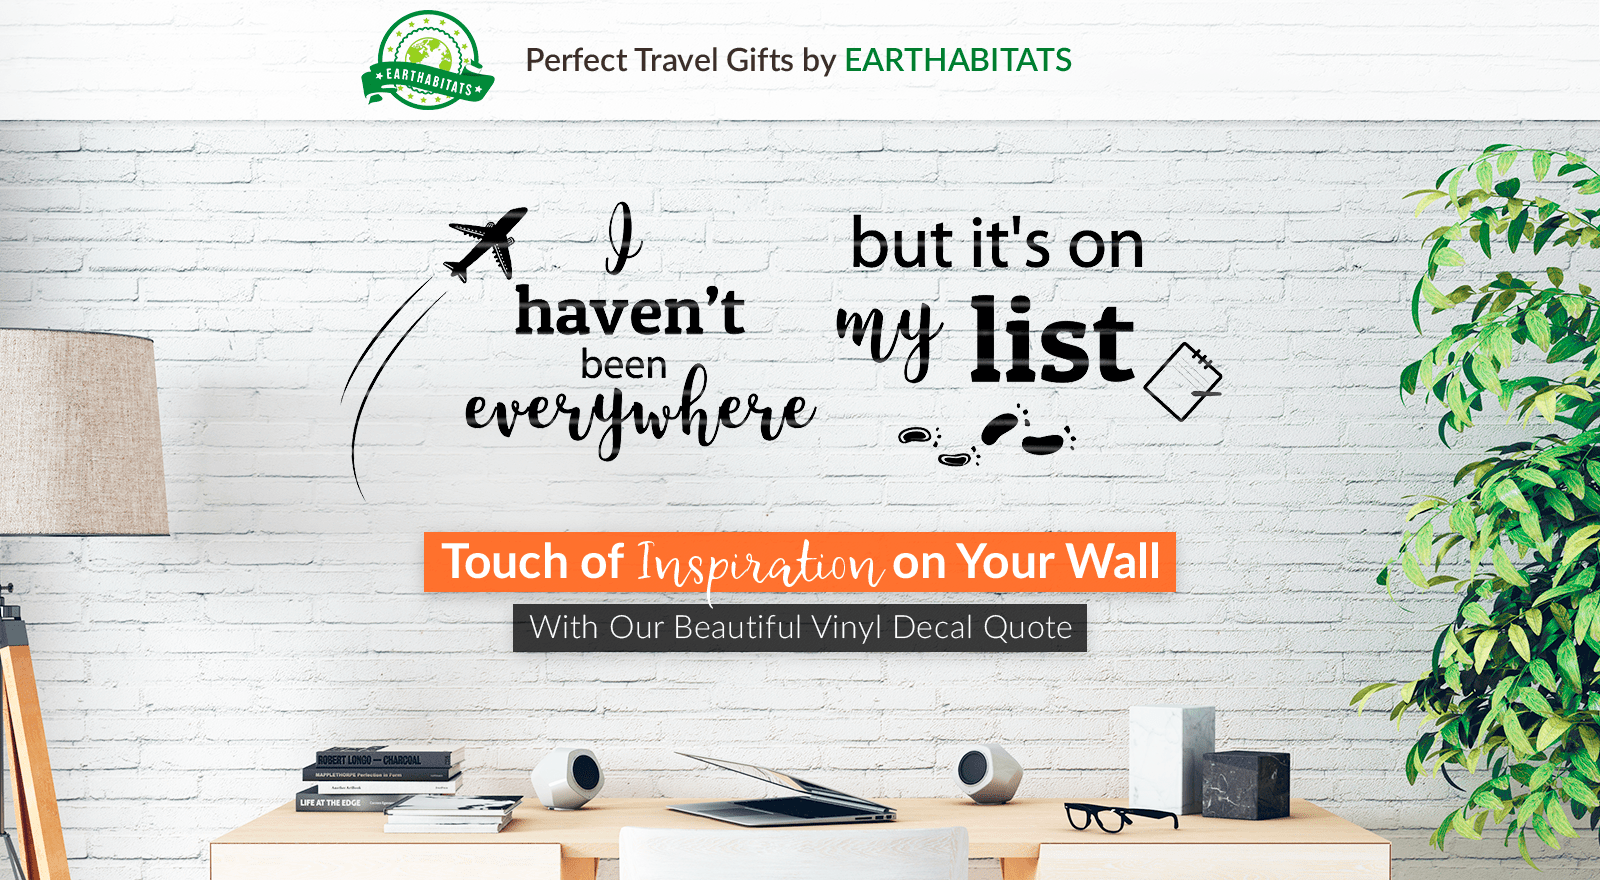 Earthabitats Vinyl Decal Quote for Wall, best travel decal, perfect gift for travelers